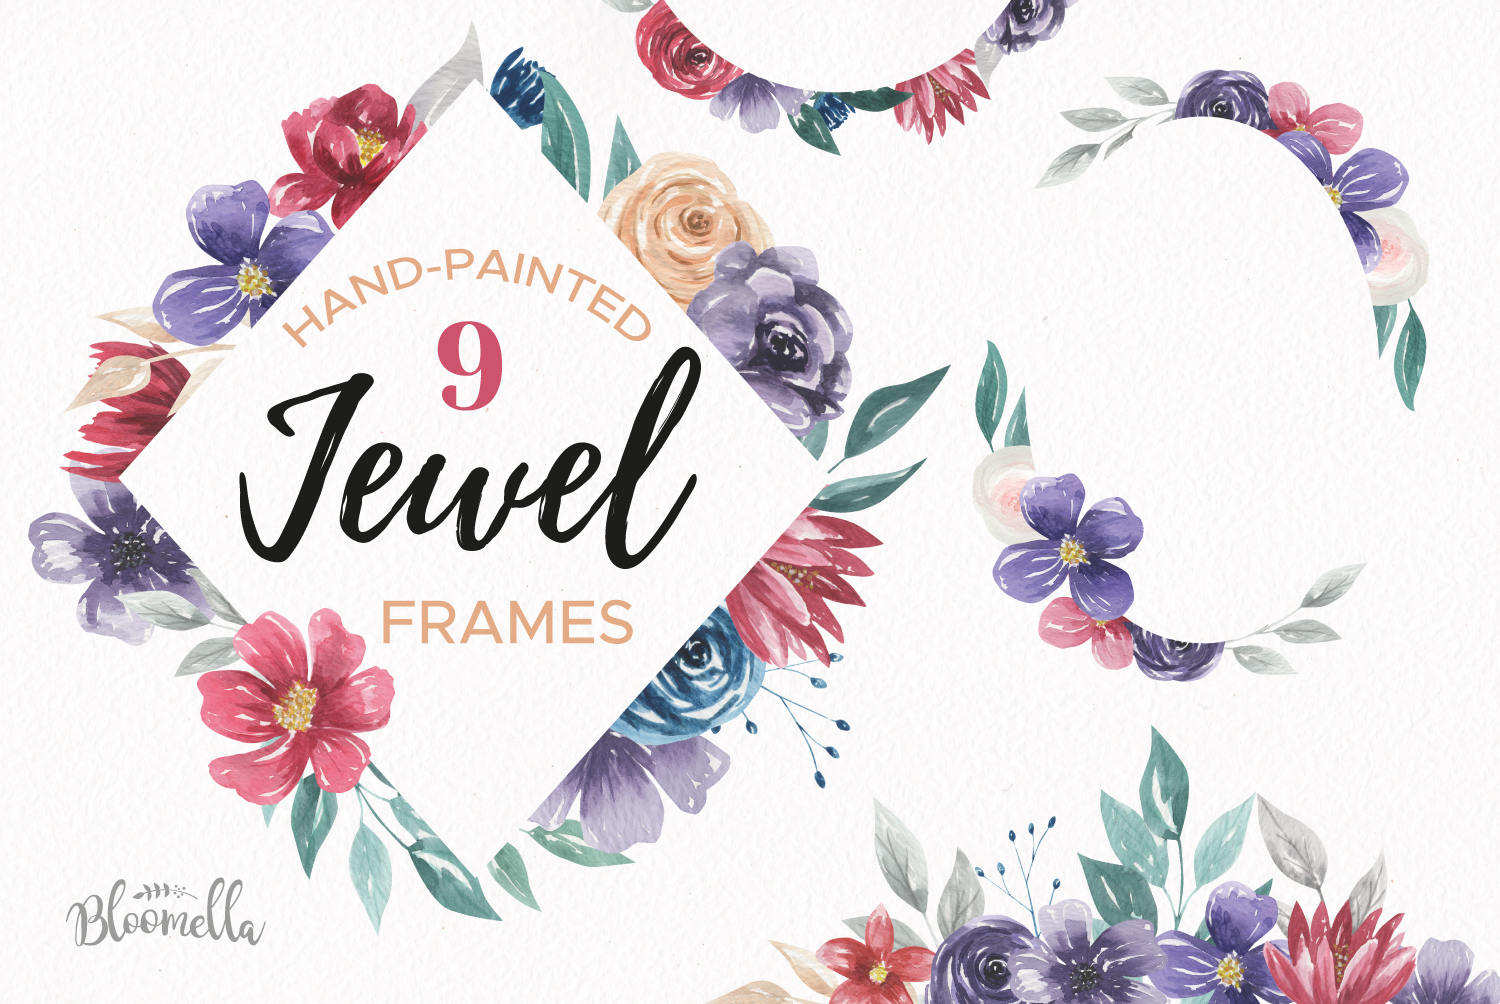 Download Free Jewel Watercolor Frames Painted Flowers Graphic By Bloomella for Cricut Explore, Silhouette and other cutting machines.